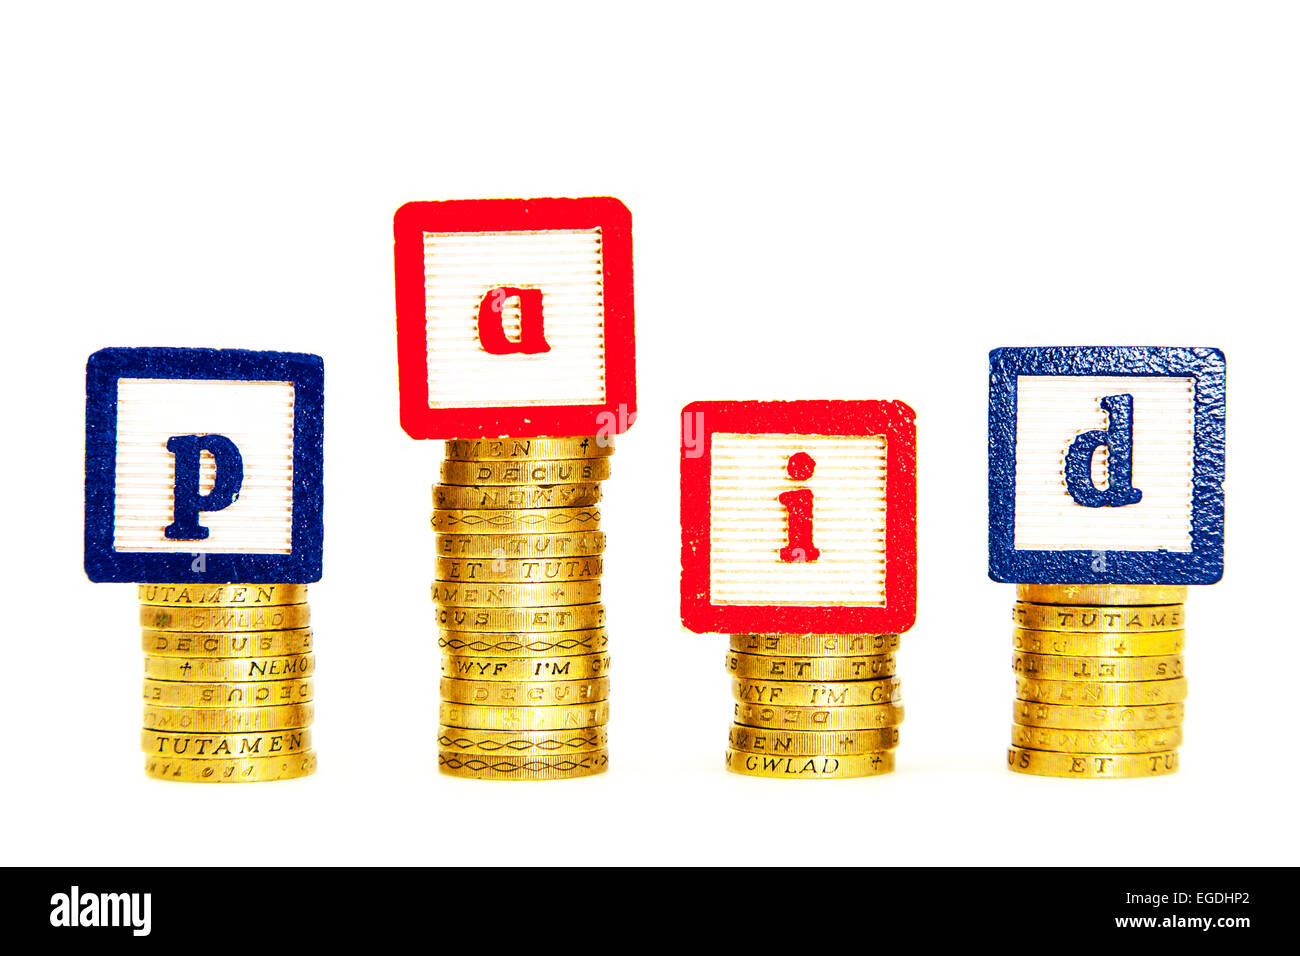 Paid cash money bill bills payee in full debt debtor debts cutout cut out white background copy space - Stock Image